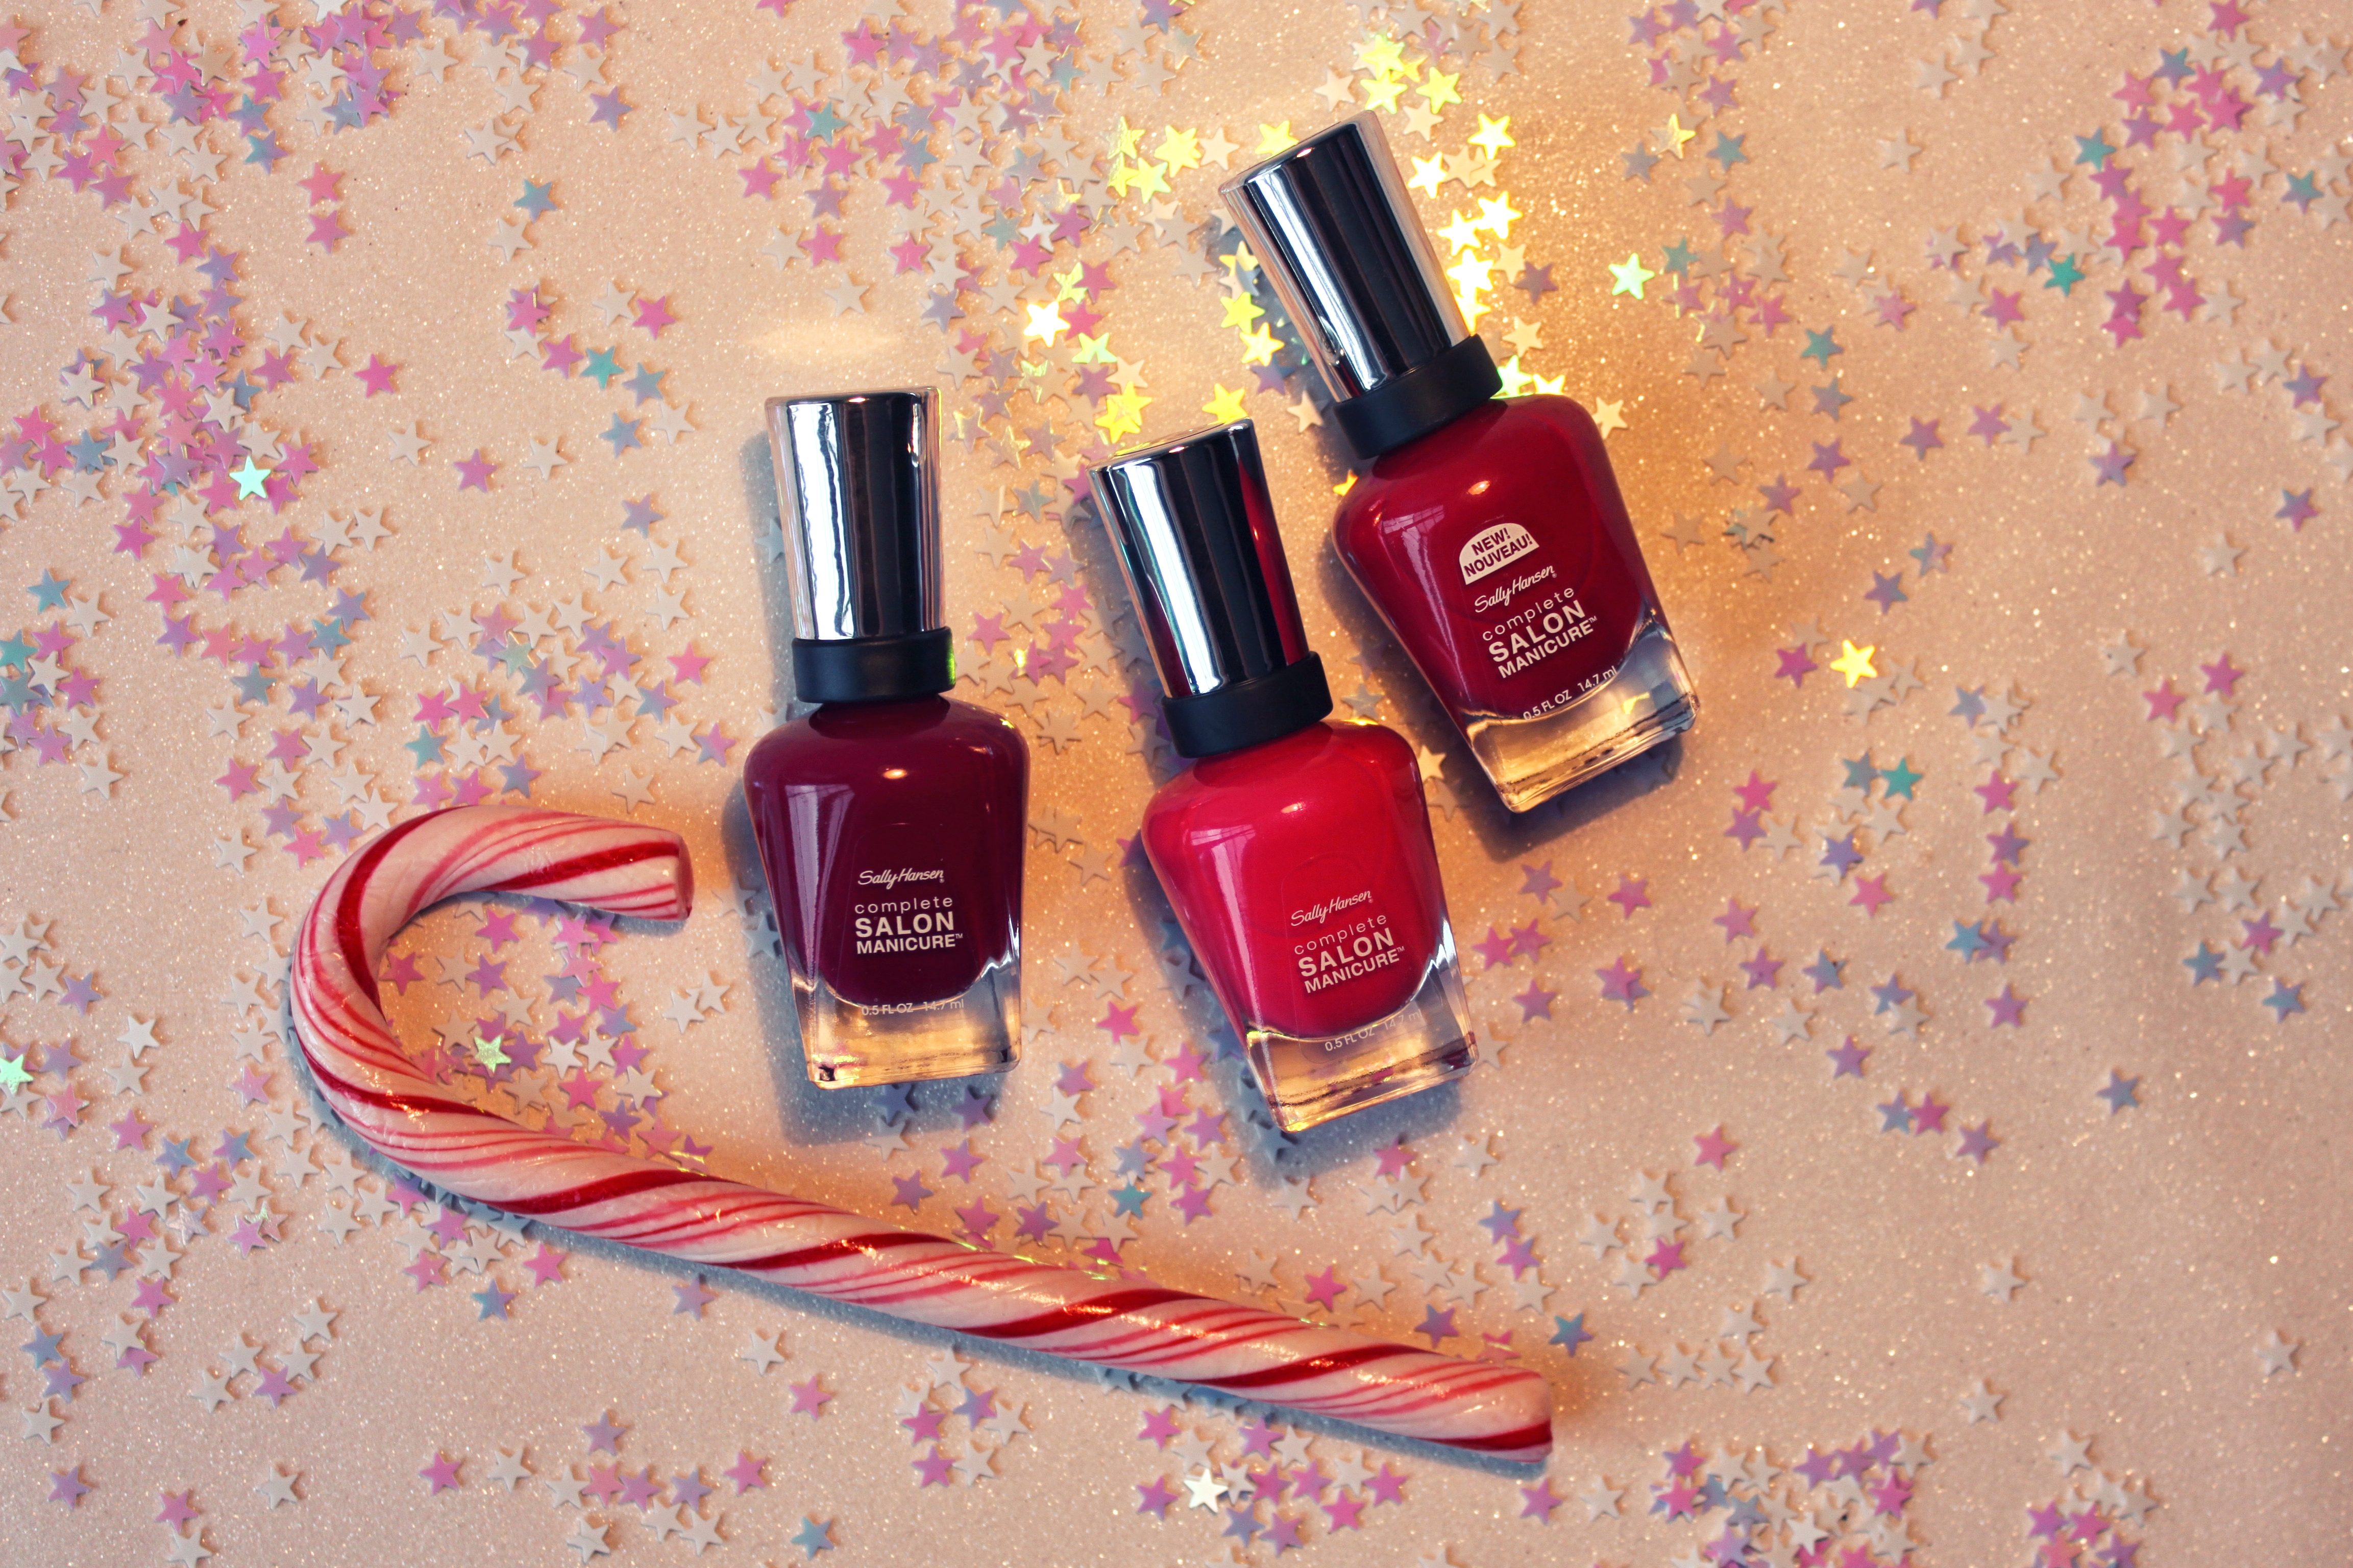 2.advent_sallyhansen_01